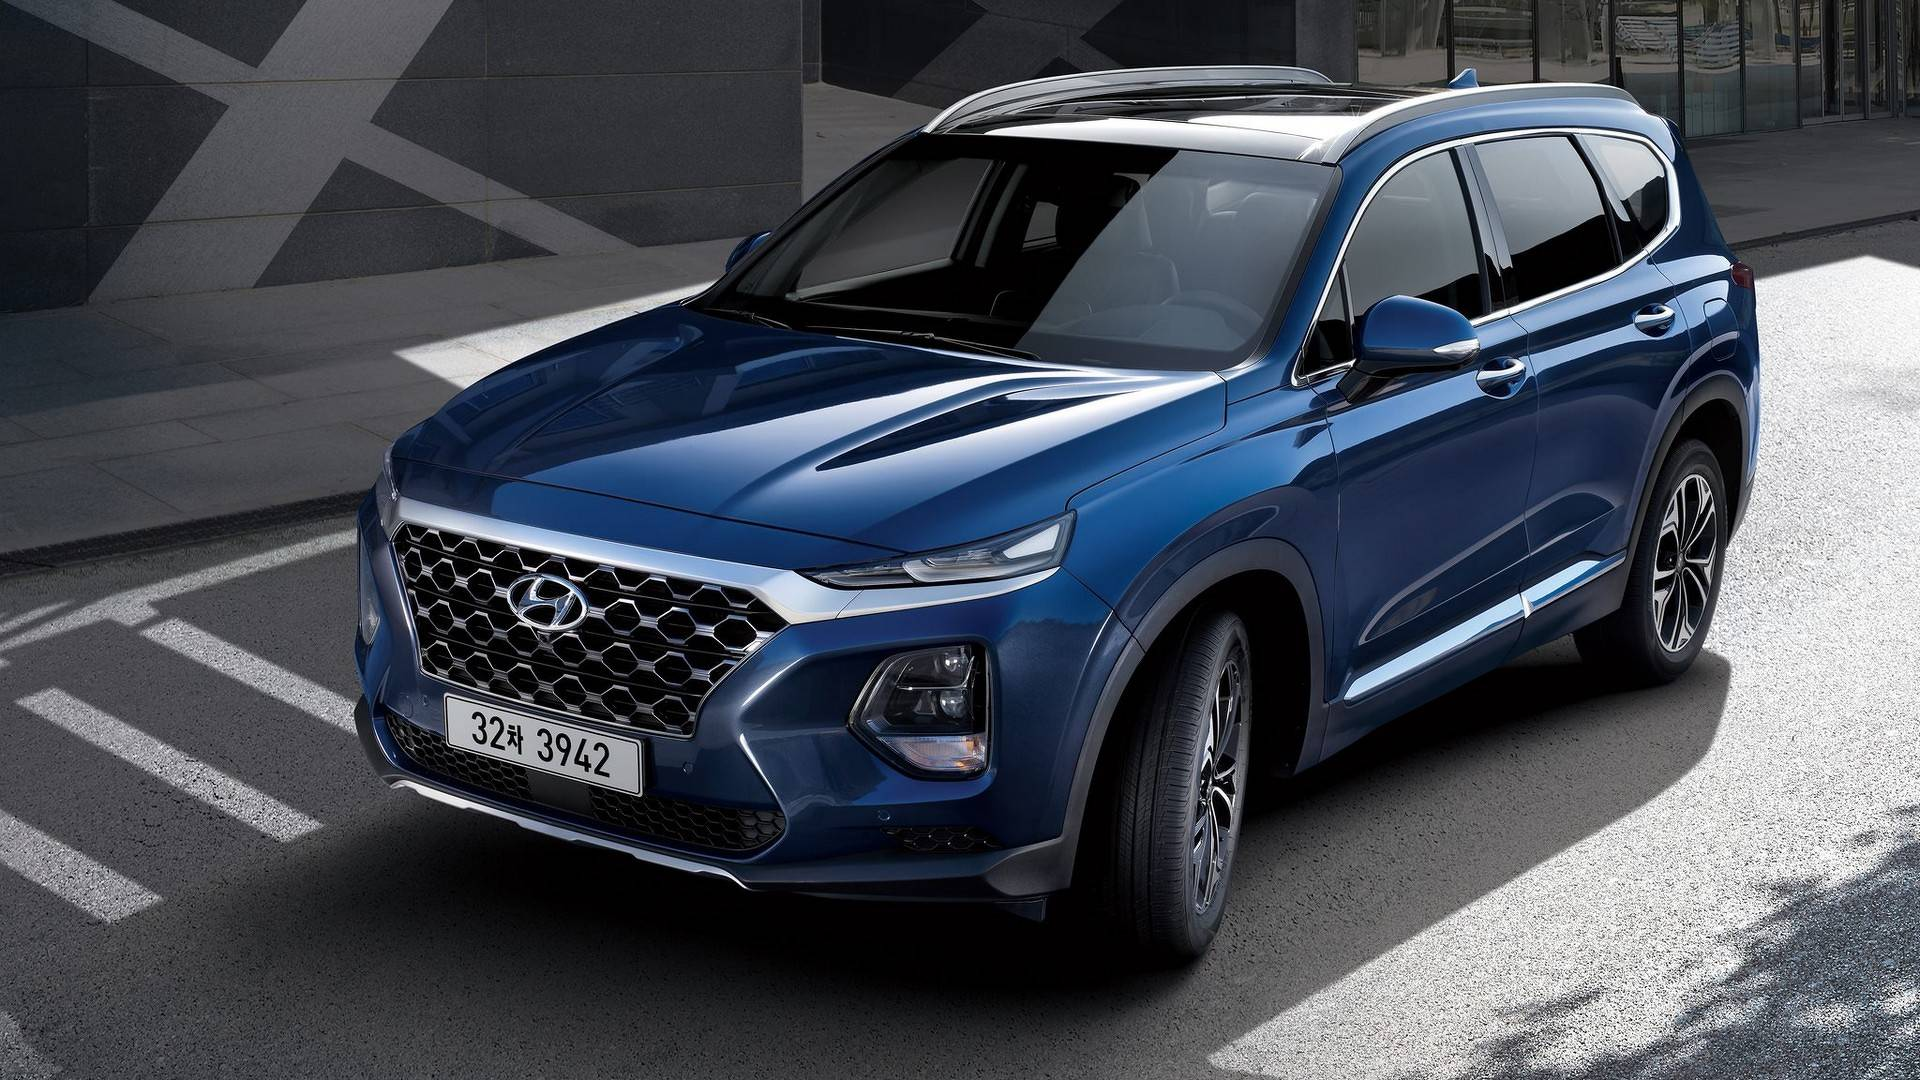 45 The 2020 Hyundai Santa Fe Release Date Style for 2020 Hyundai Santa Fe Release Date